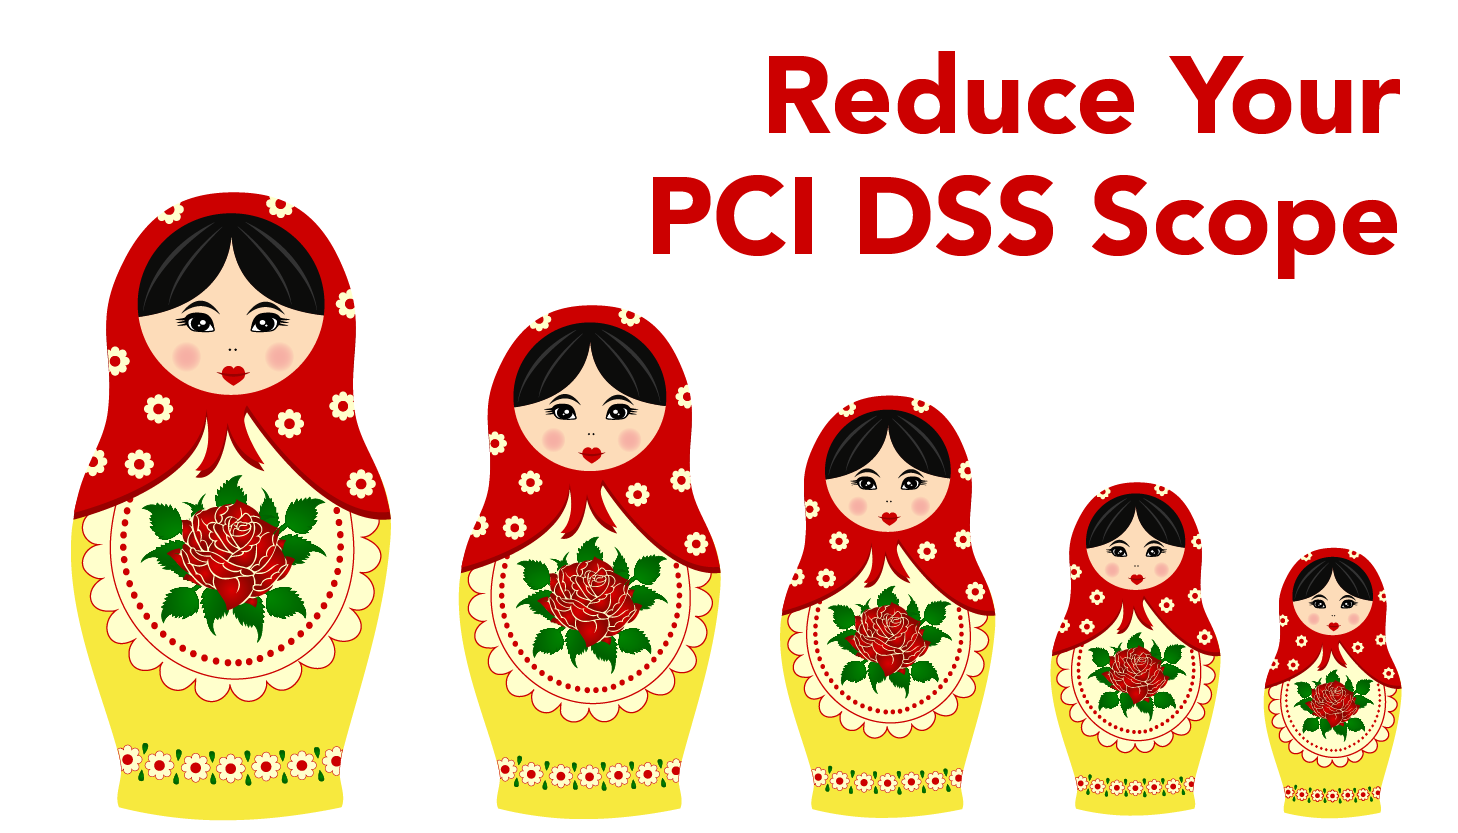 PCI Consultants Recommend Reduce your PCI Scope